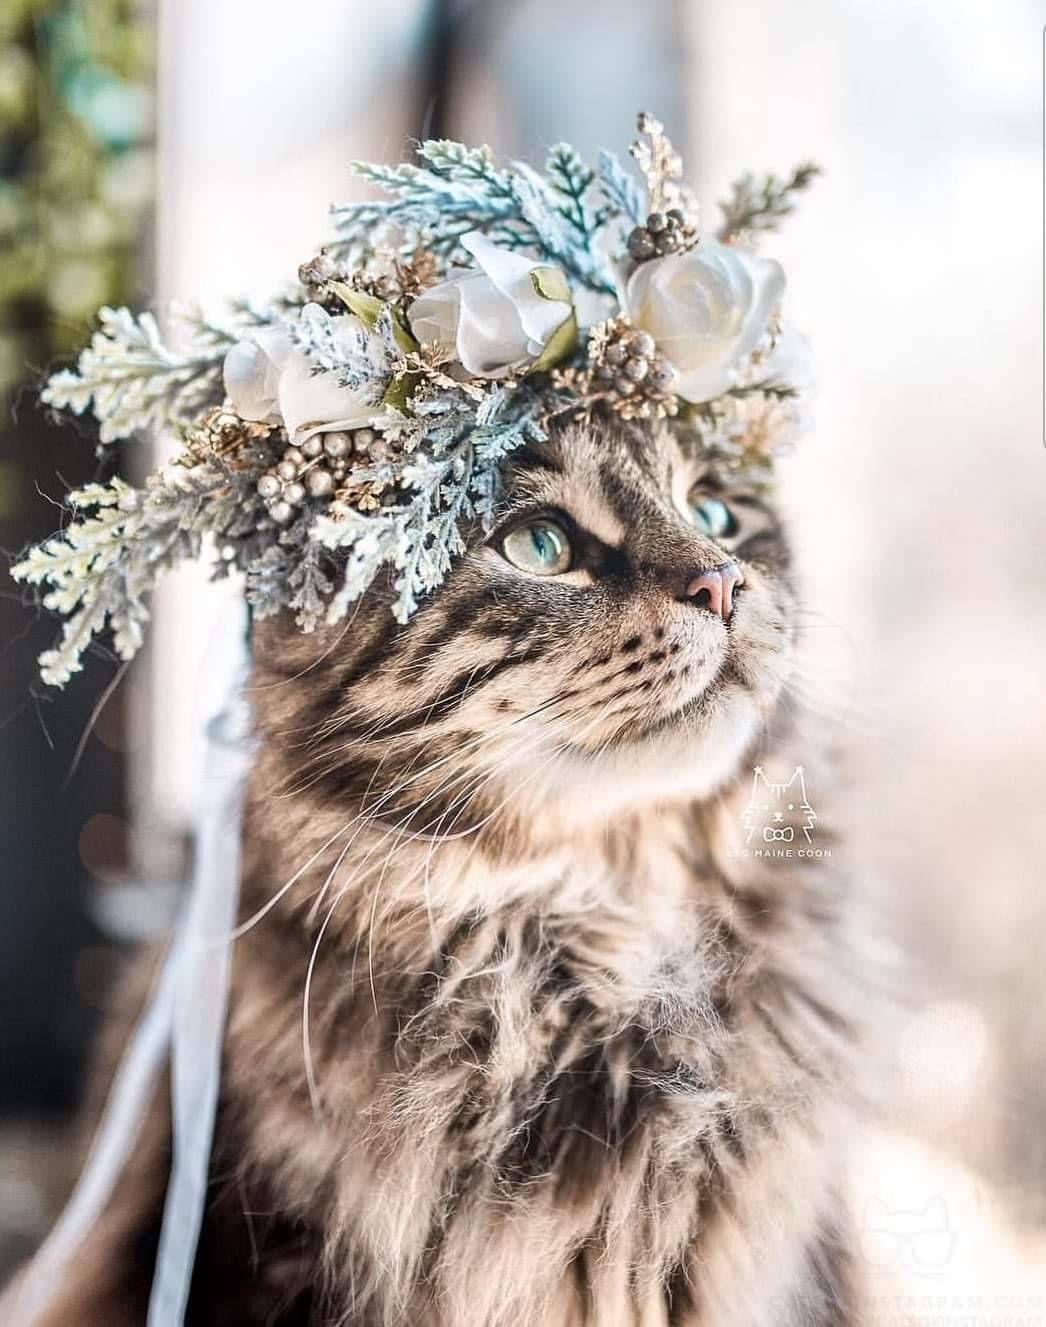 Lady Gray Dreams Beautiful Cats Cute Cats And Kittens Funny